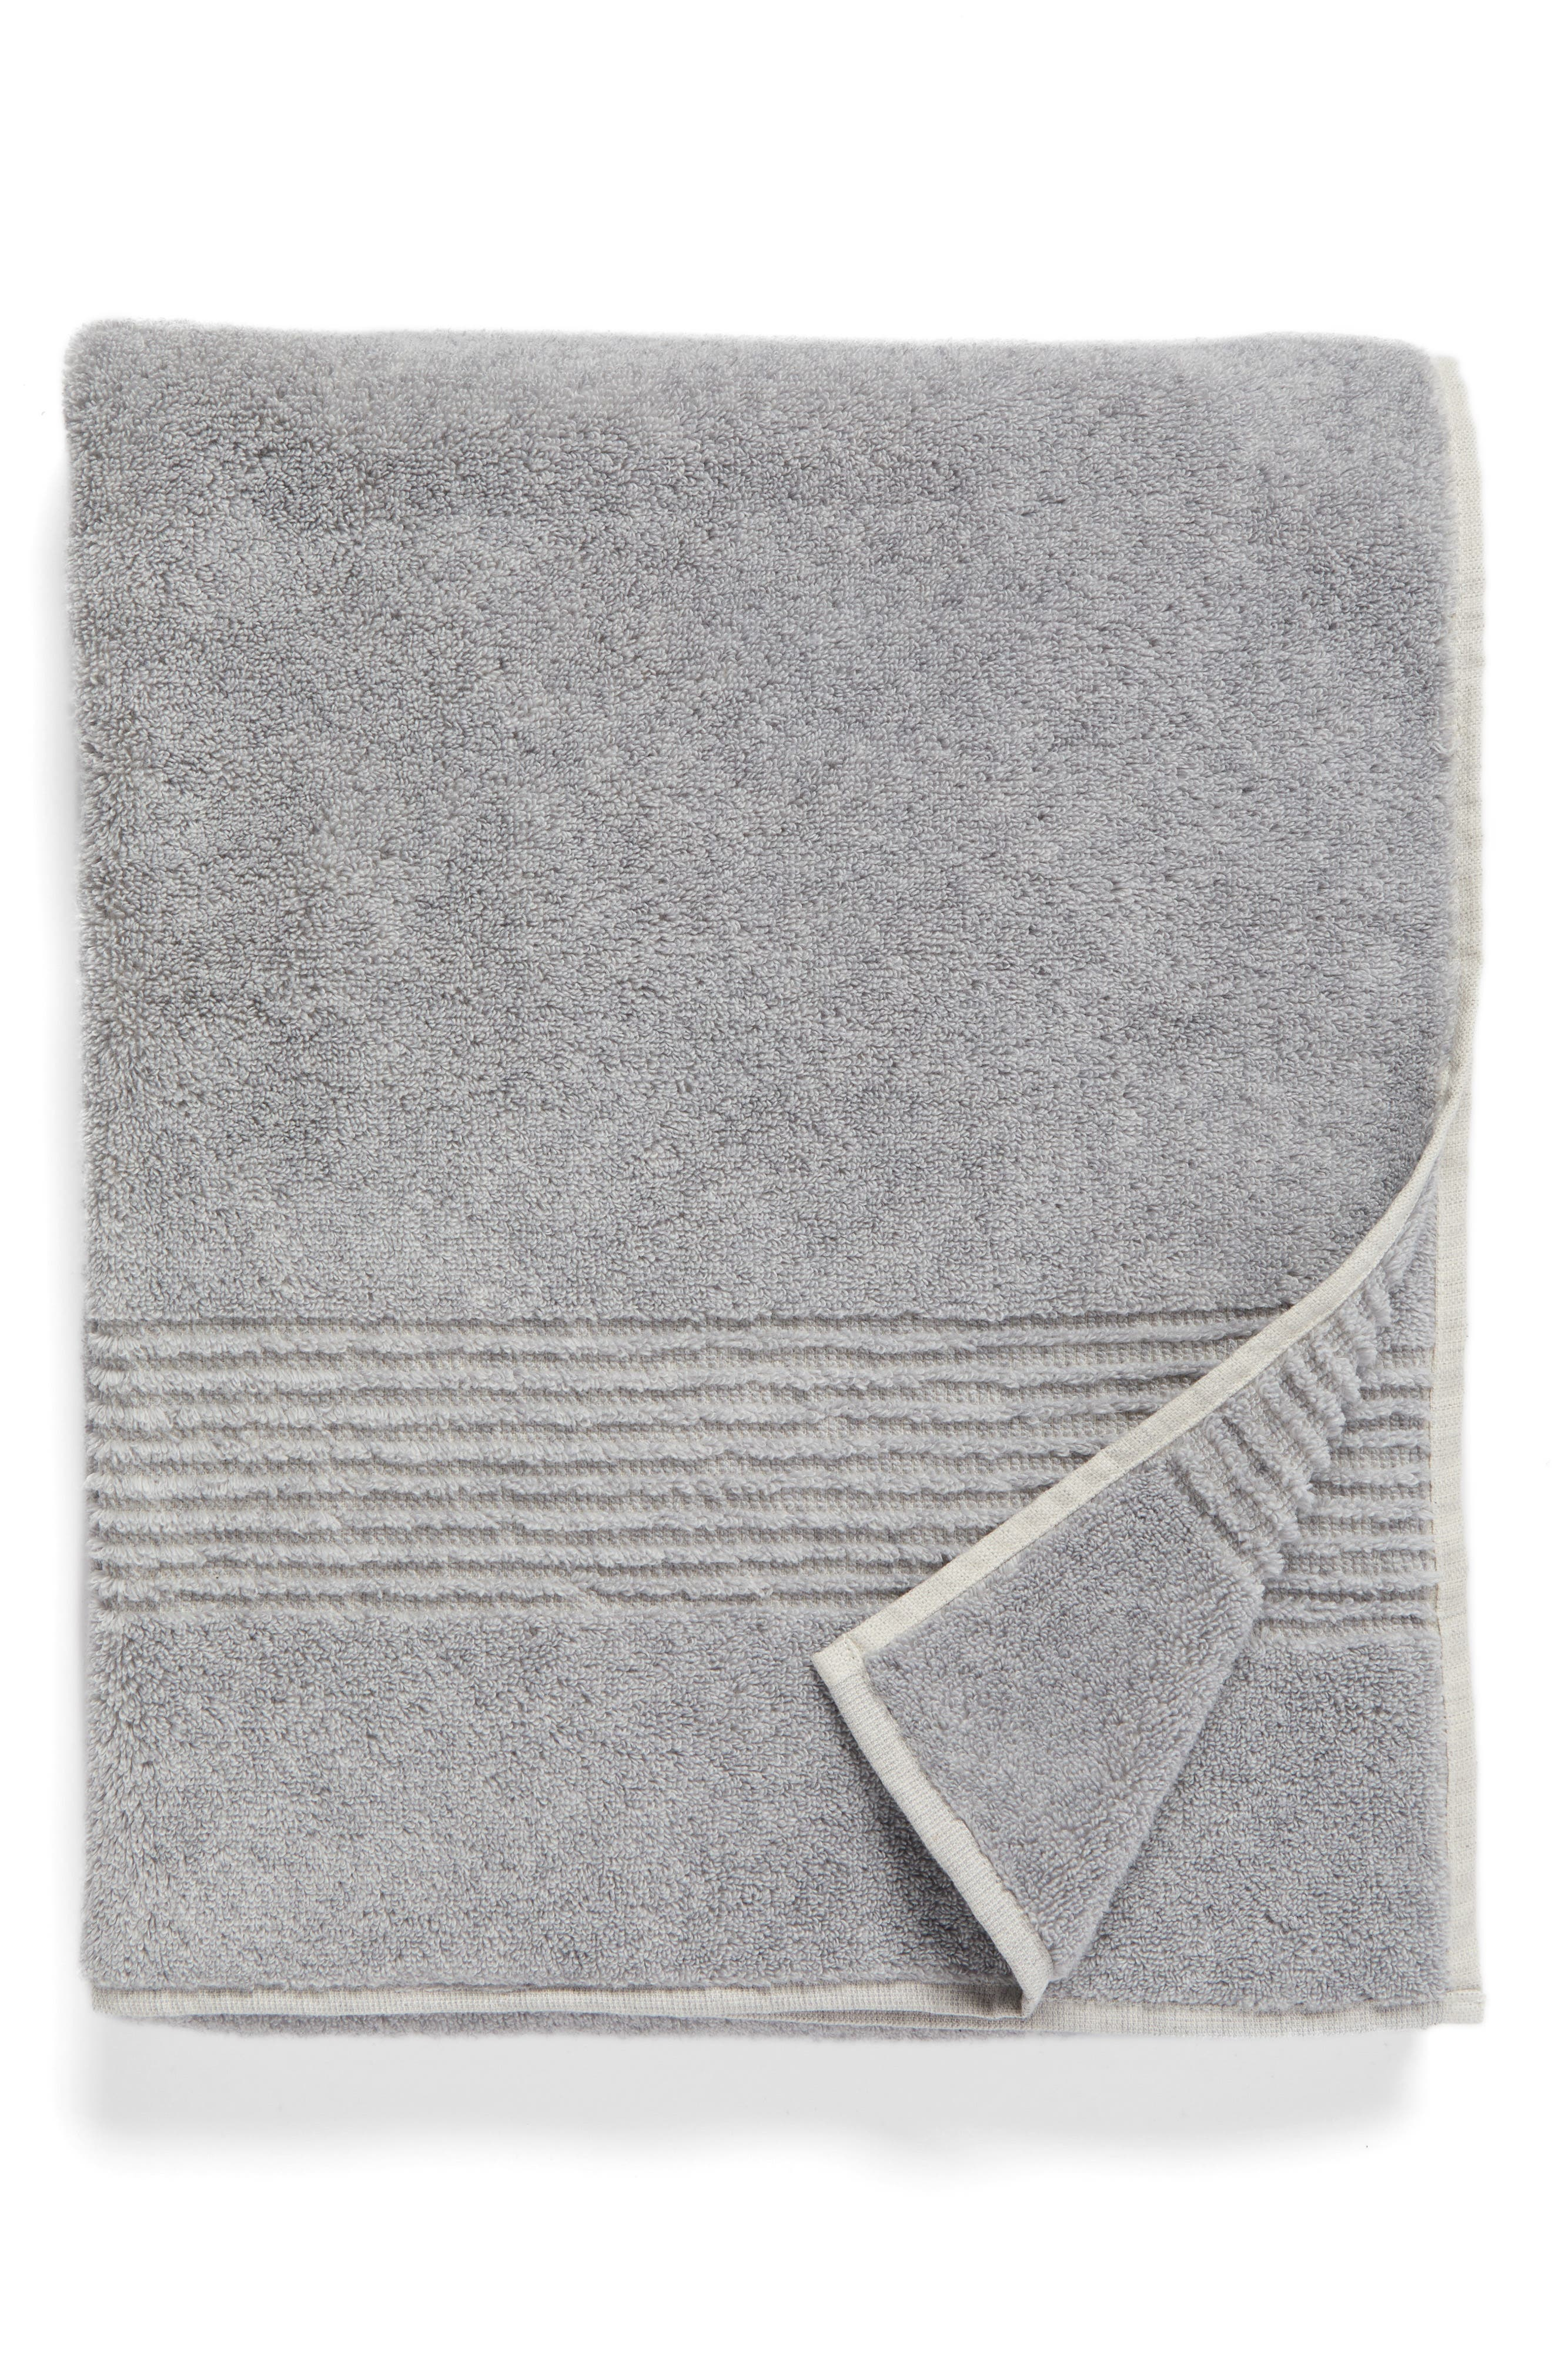 Nordstrom at Home Organic Hydrocotton Bath Towel (2 for $49)